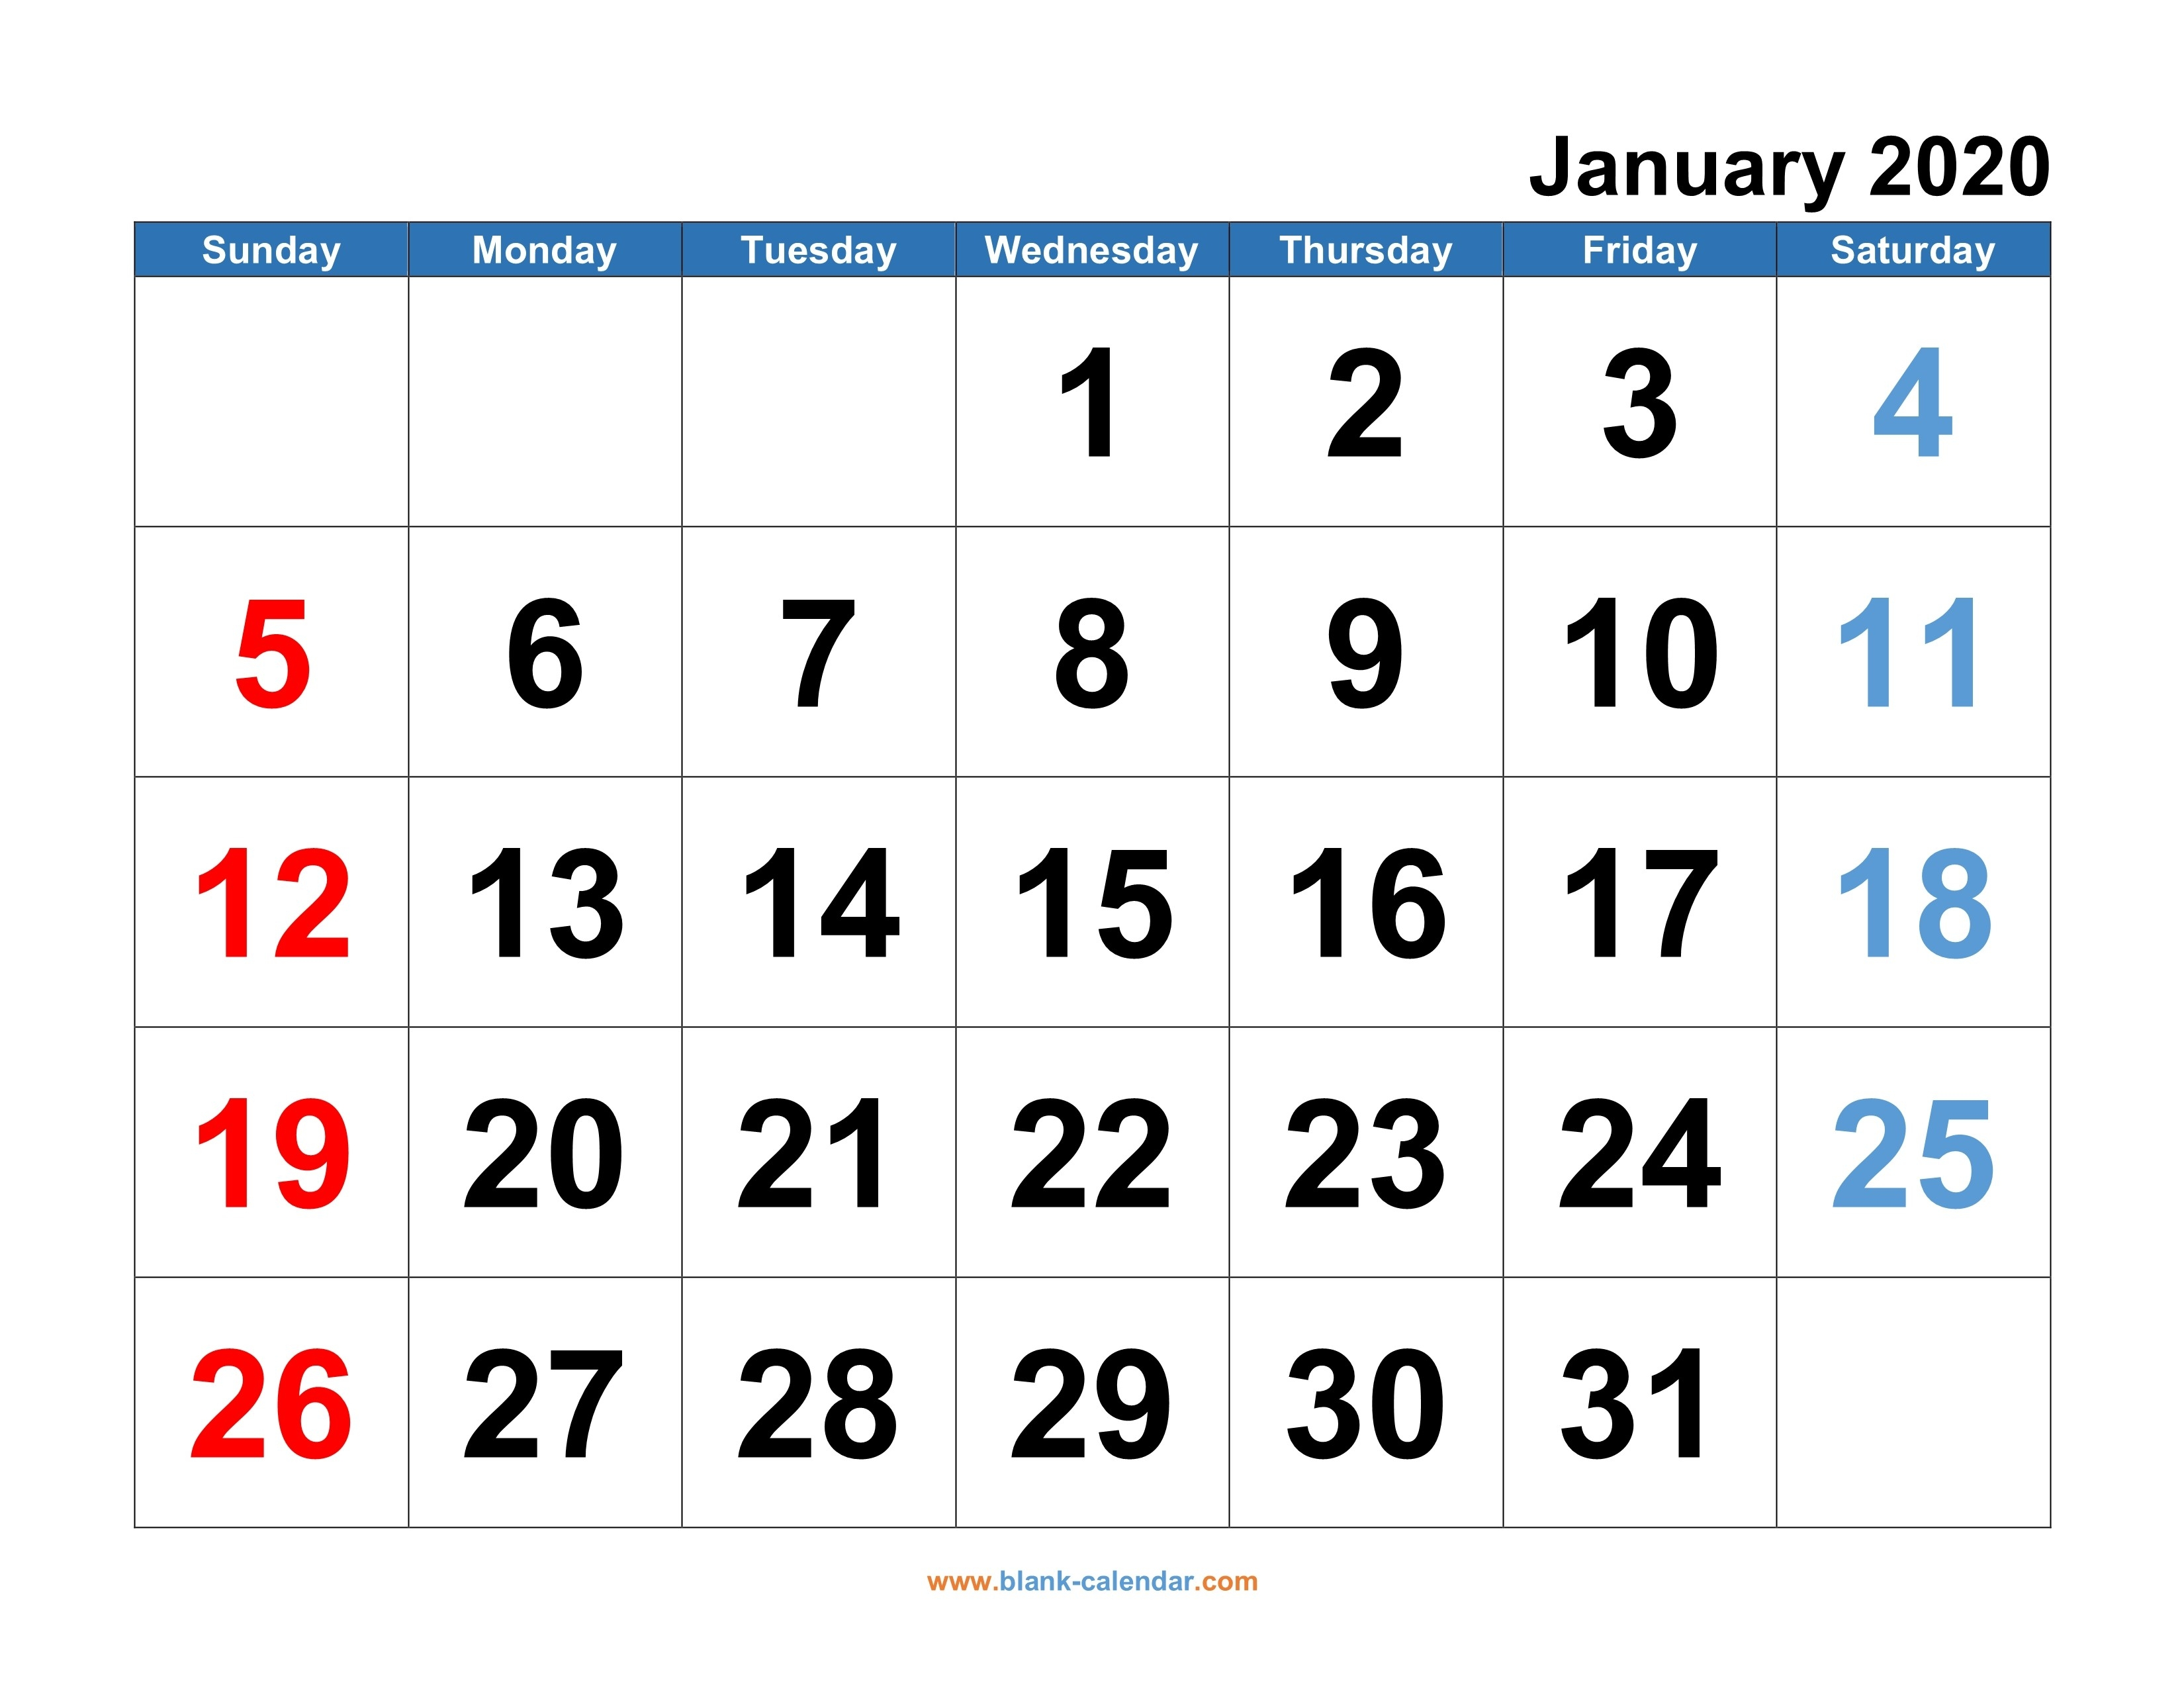 Monthly Calendar 2020 | Free Download, Editable And Printable-Downloadable 2020 Calendar Template Word